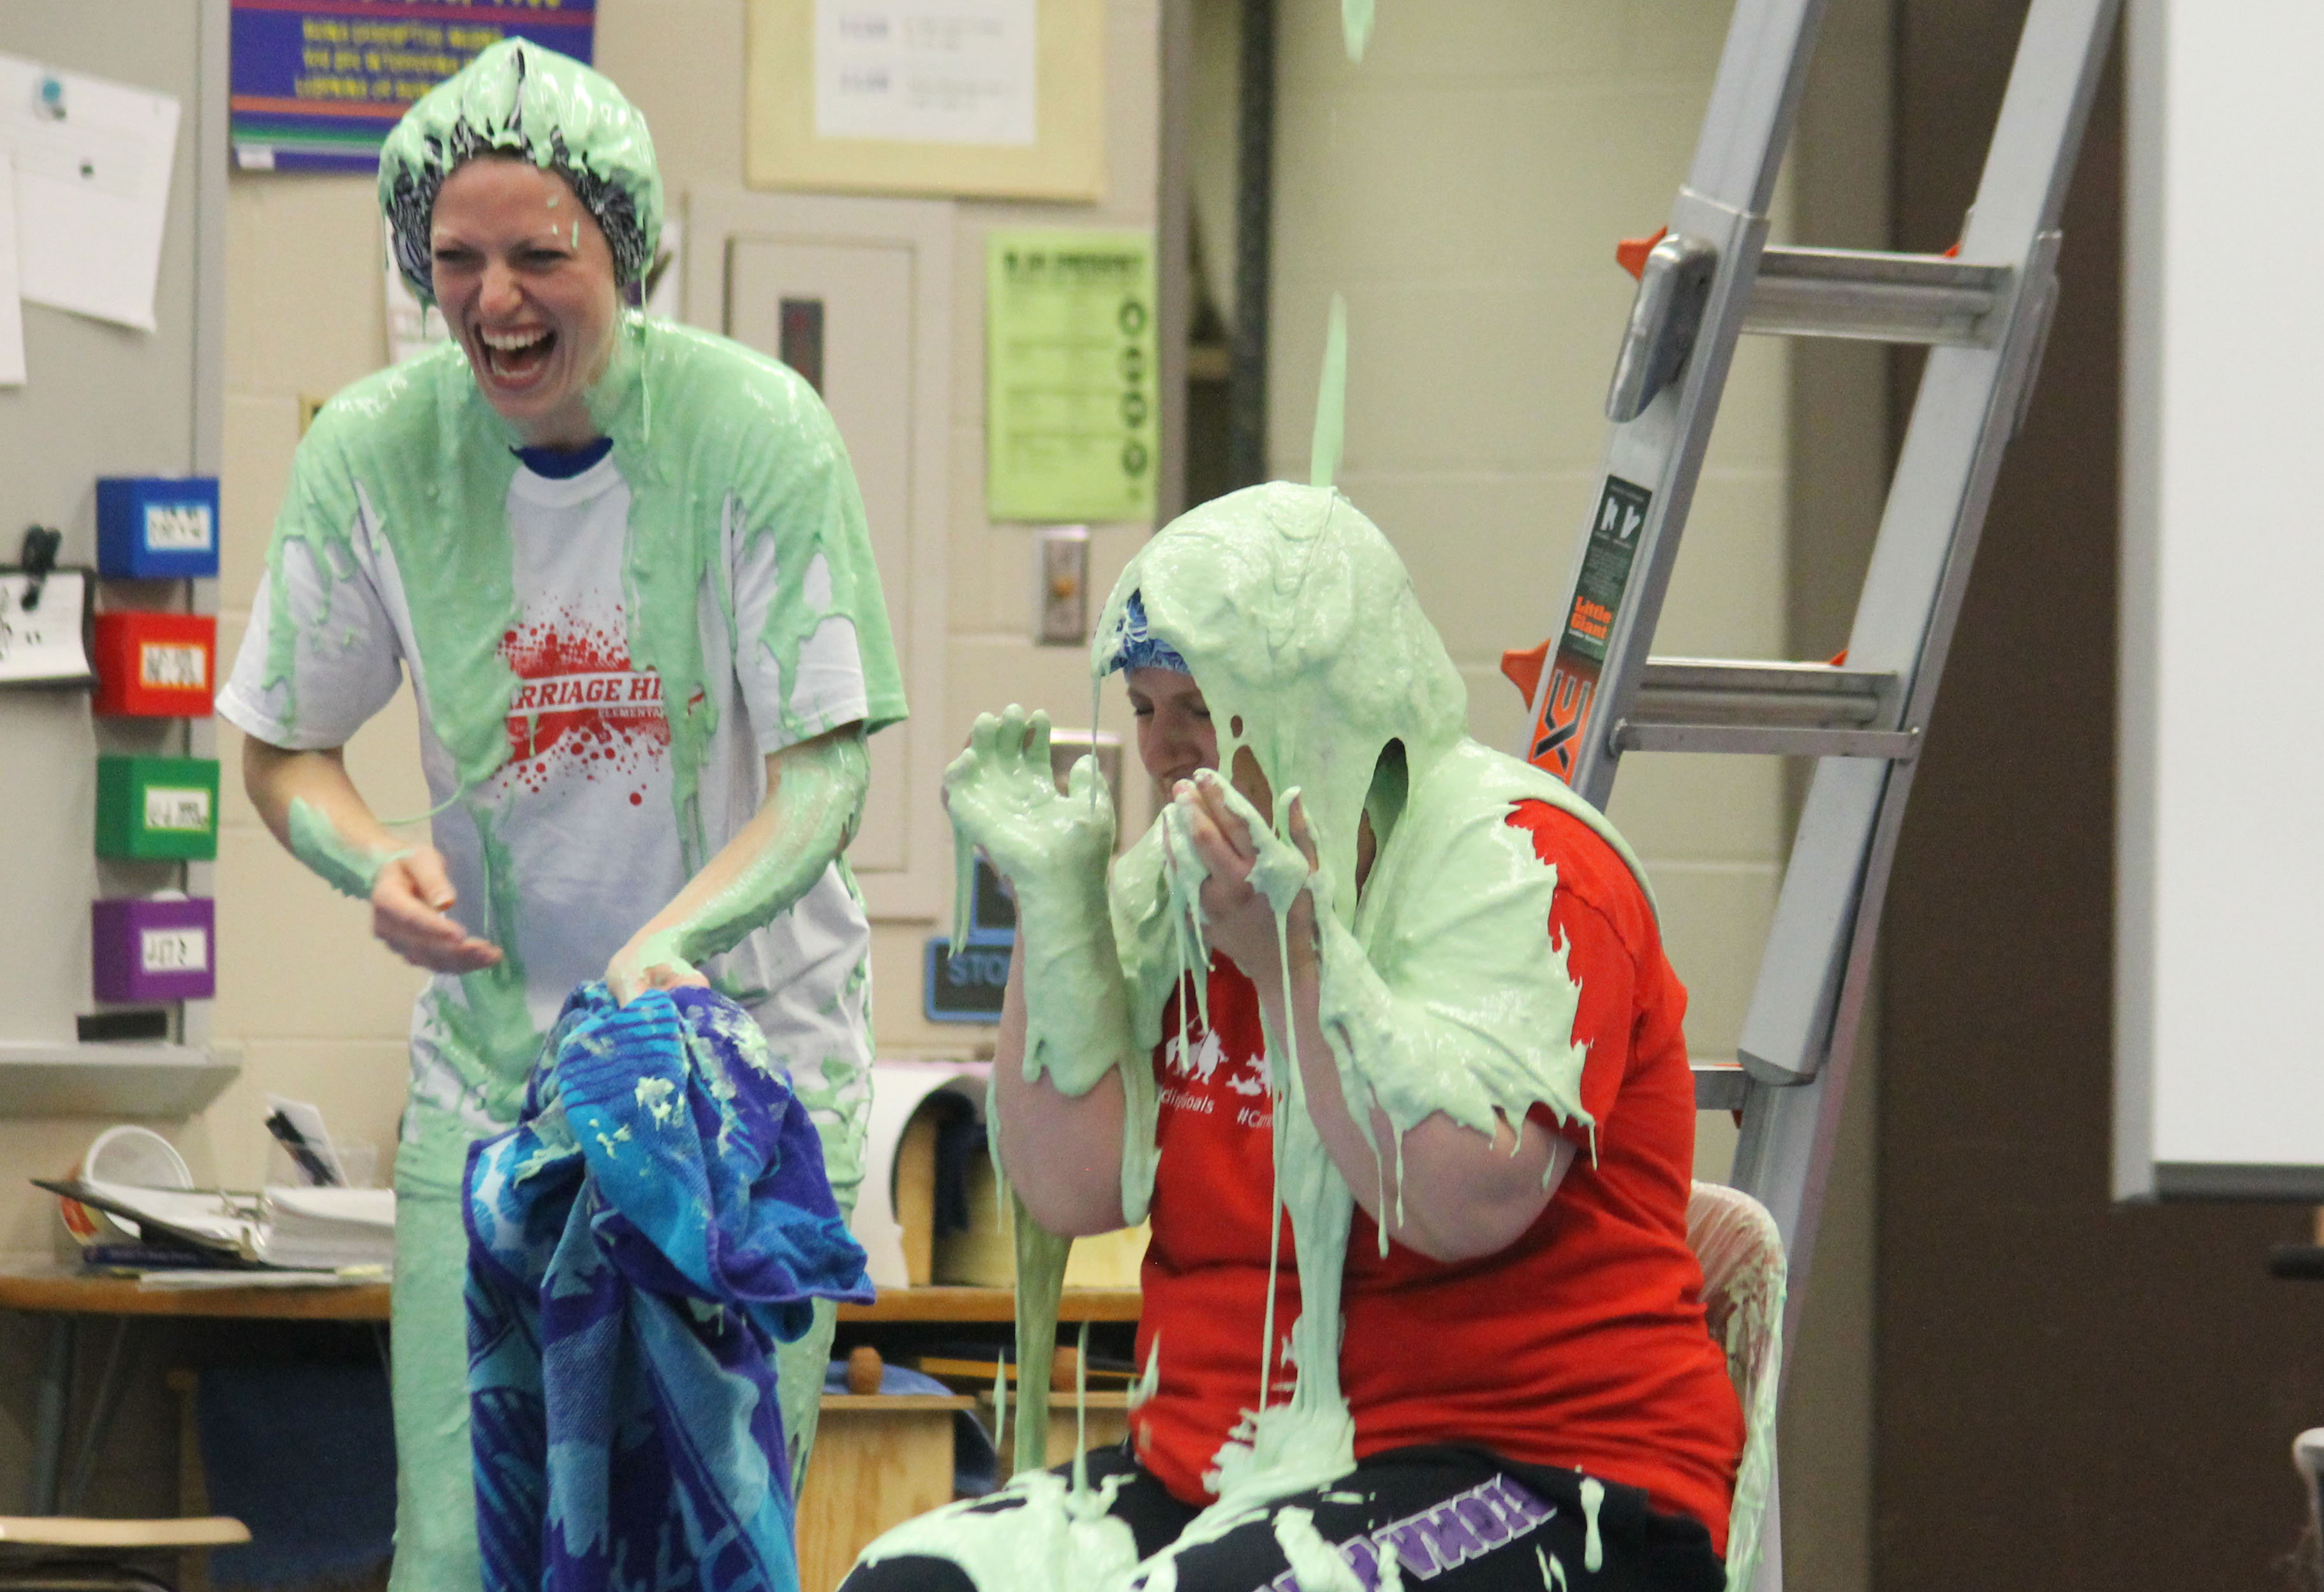 Carriage Hill Elementary teachers get slimed